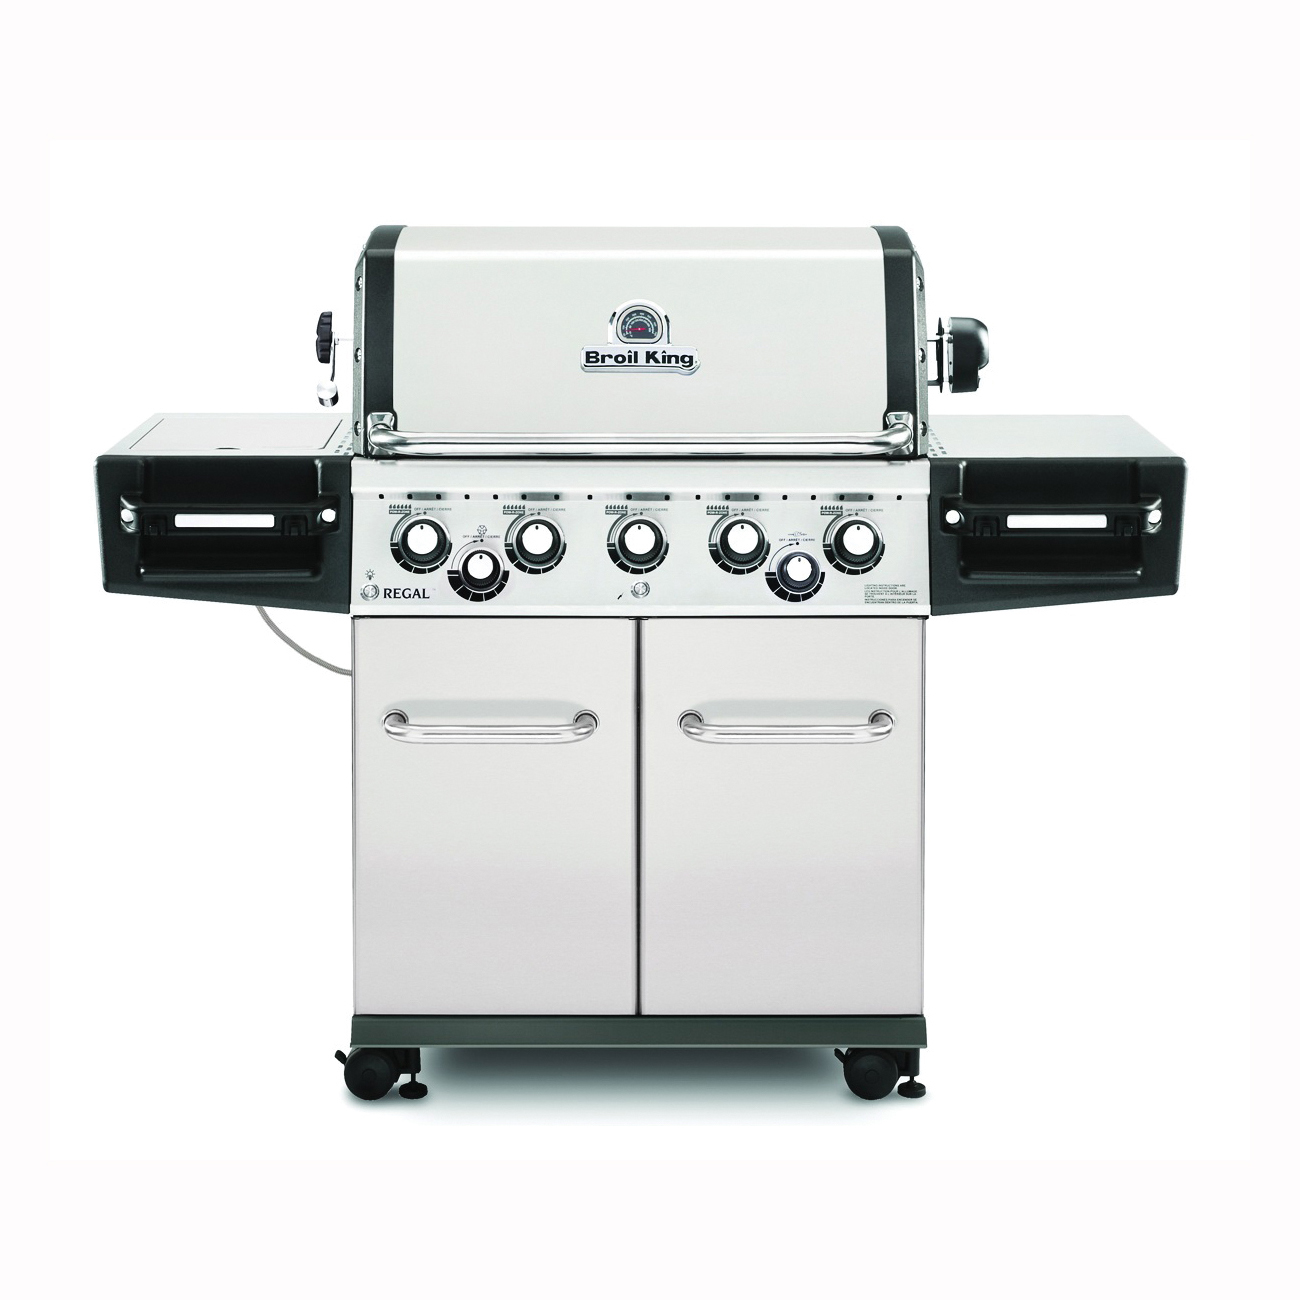 Picture of Broil King Regal 958347 Gas Grill, 55000 Btu/hr BTU, Natural Gas, 5 -Burner, 625 sq-in Primary Cooking Surface